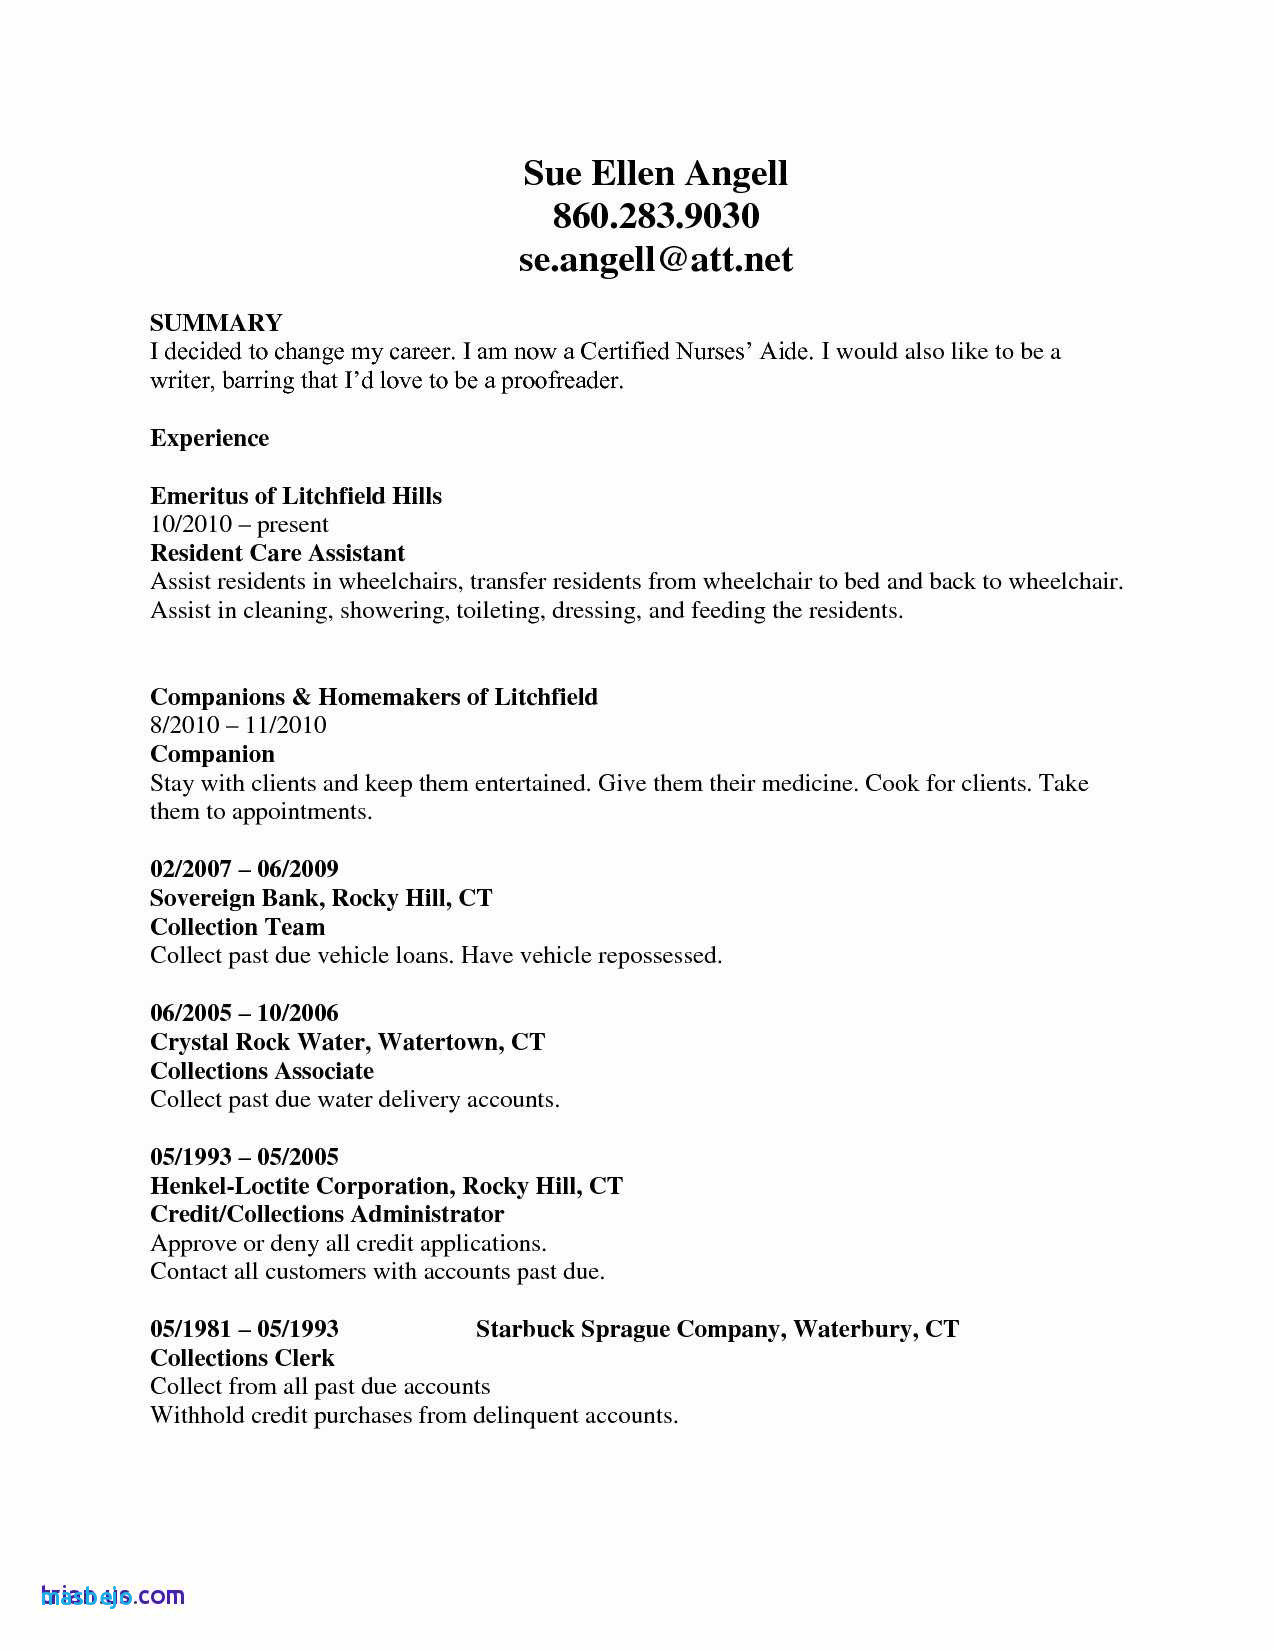 Direct Care Resume - Cna Resume Rn Bsn Resume Awesome Nurse Resume 0d Wallpapers 42